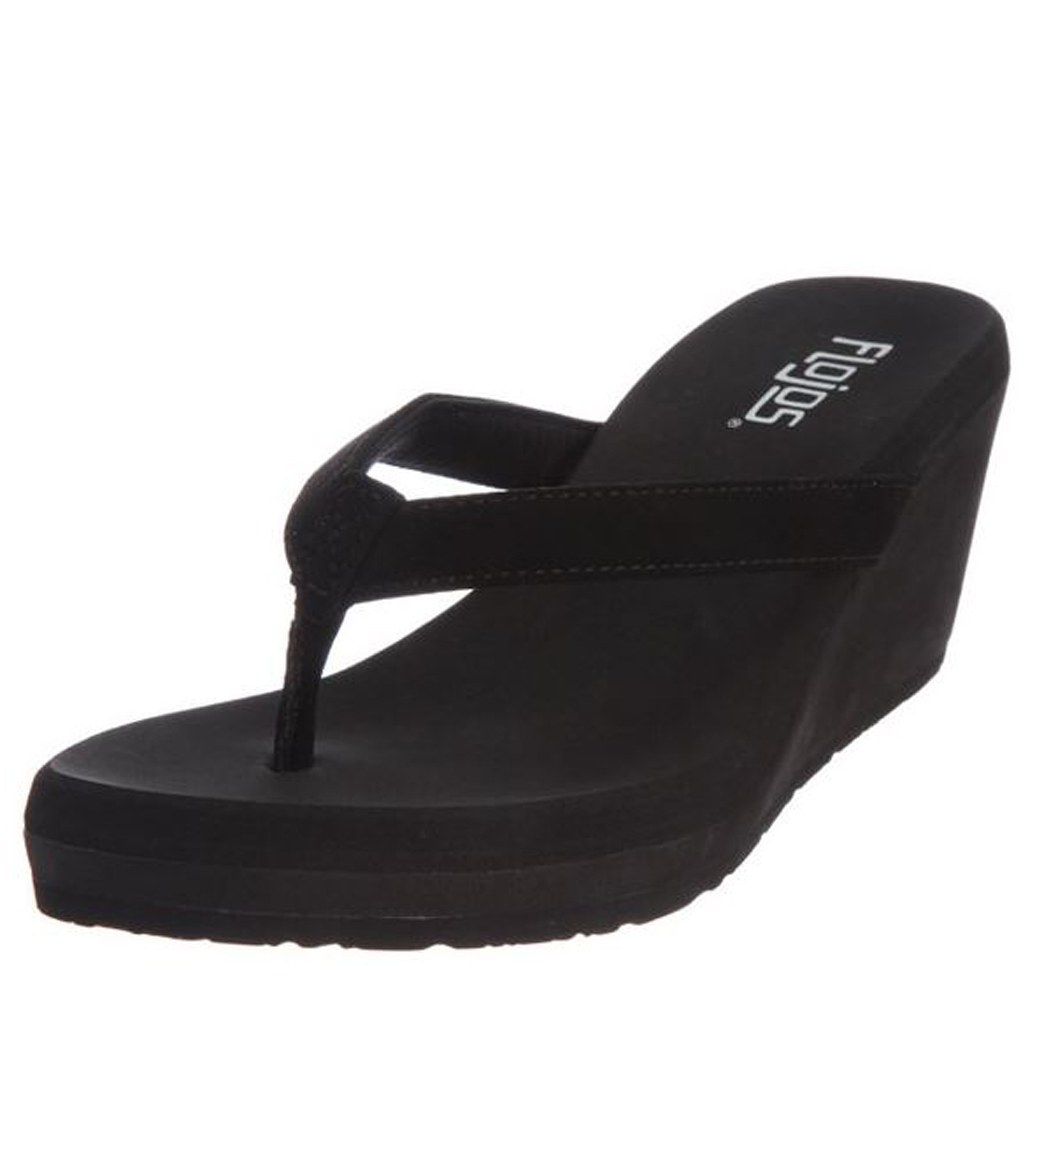 bfd81ad9557010 Flojos Women s Olivia Wedge Flip Flop at SwimOutlet.com